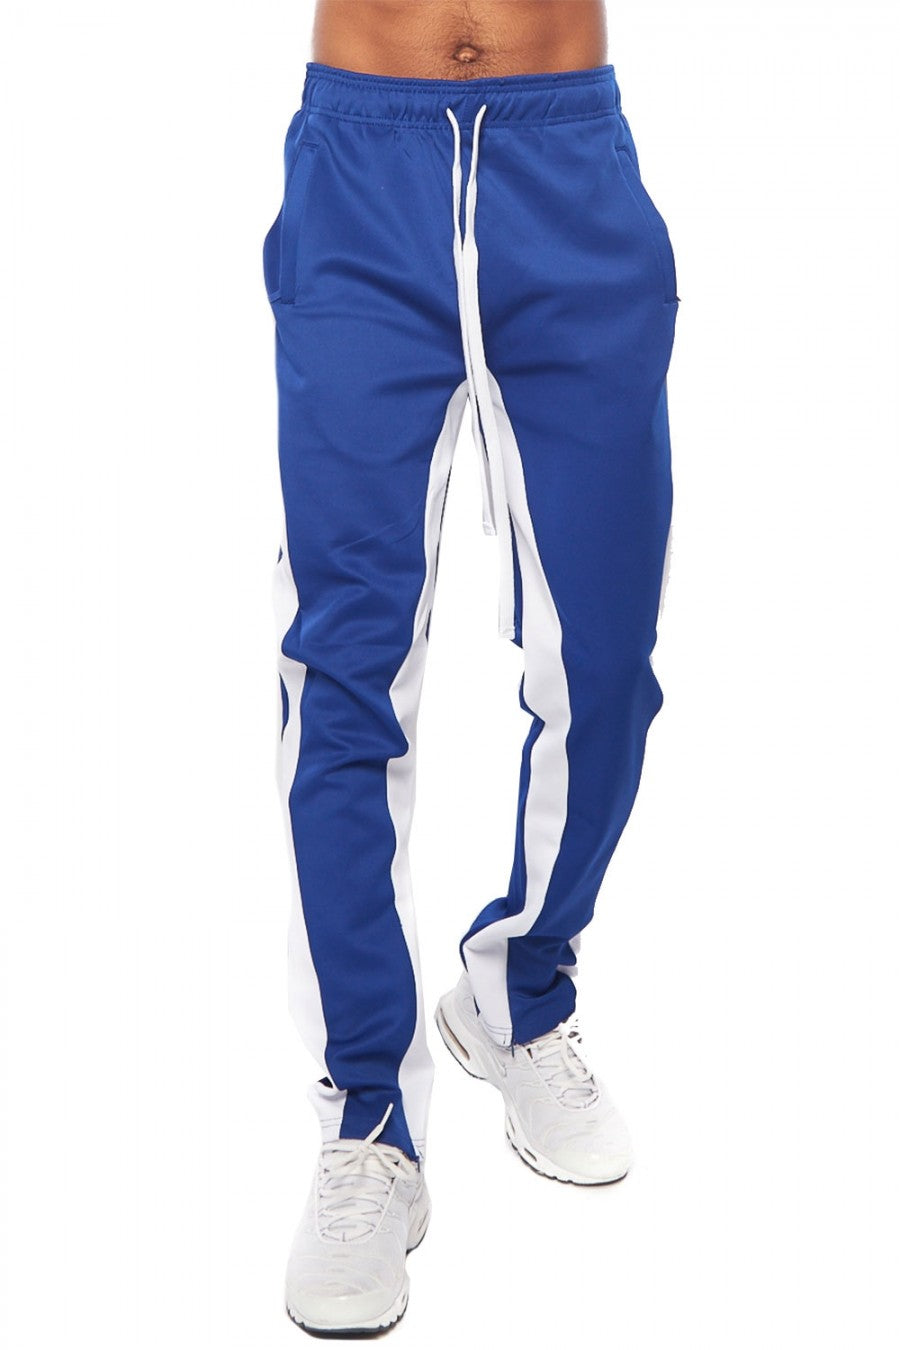 EZ Global Blue and White Track Pants